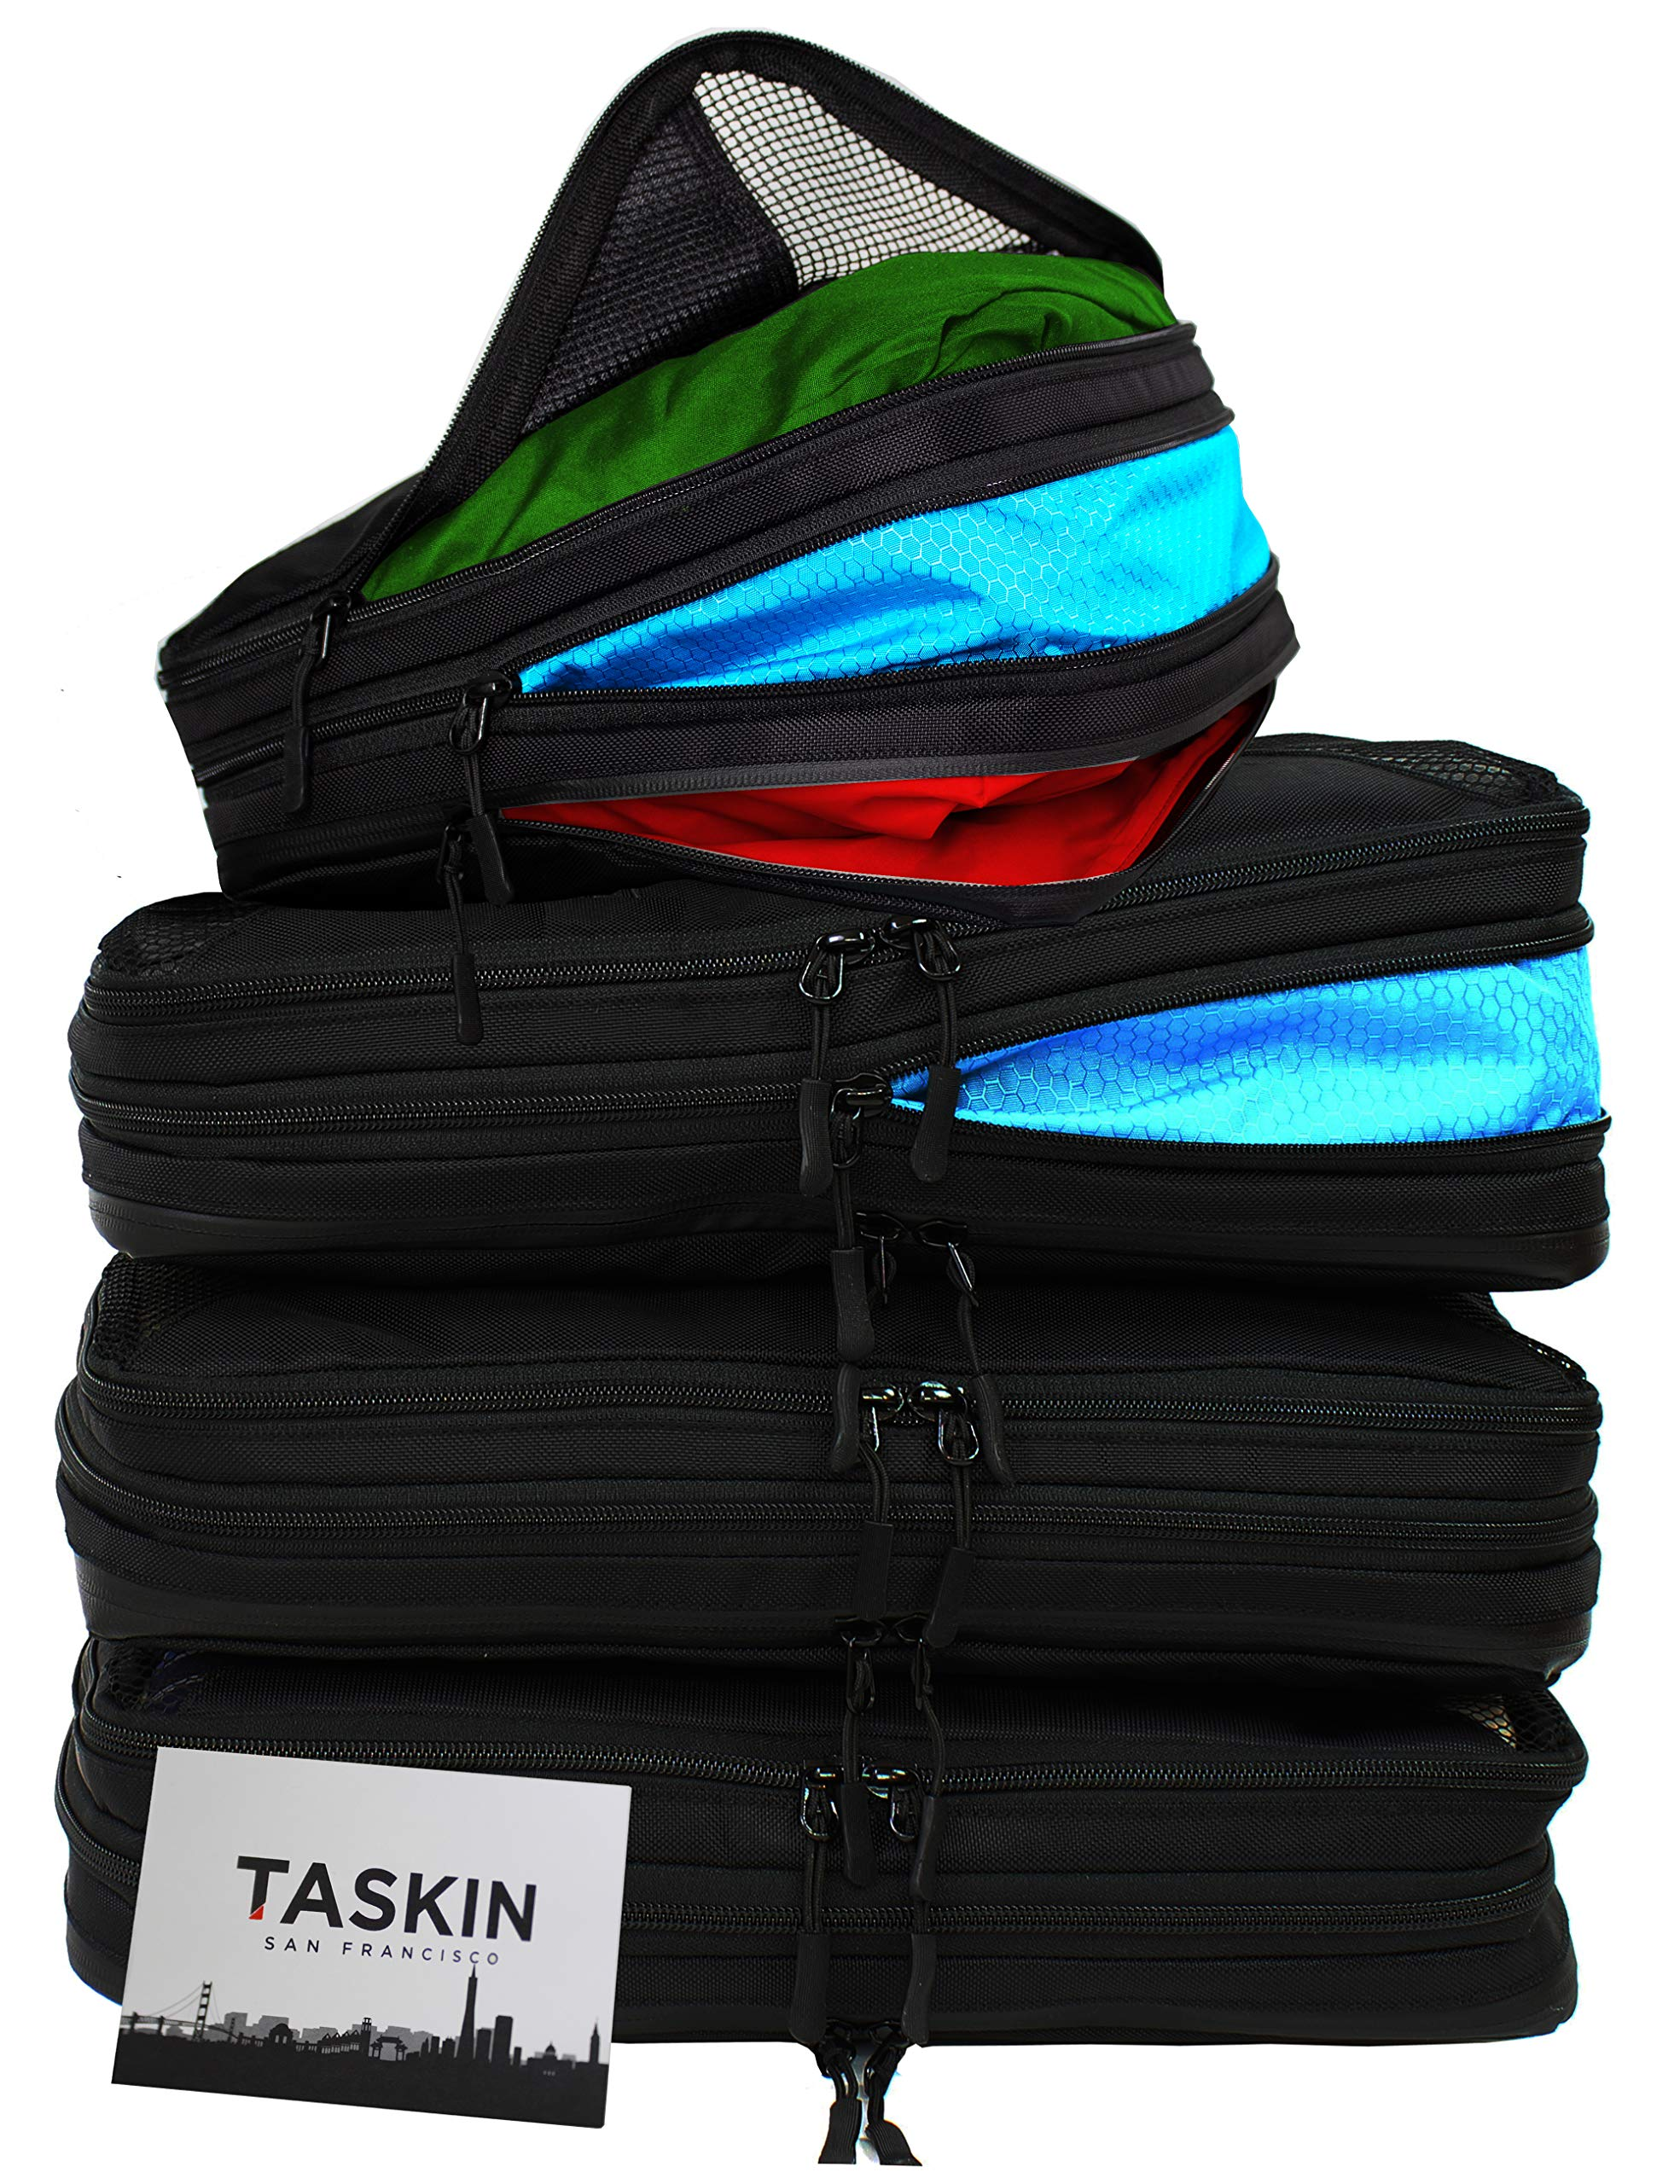 Taskin | Compression Packing Cubes | Clean & Dirty Compartments w/Flexible Separator | New Patent Pending Anti-Snag-Zipper Construction | YKK Zippers (Black | Set of 4 | 3 L + 1 S) by Taskin